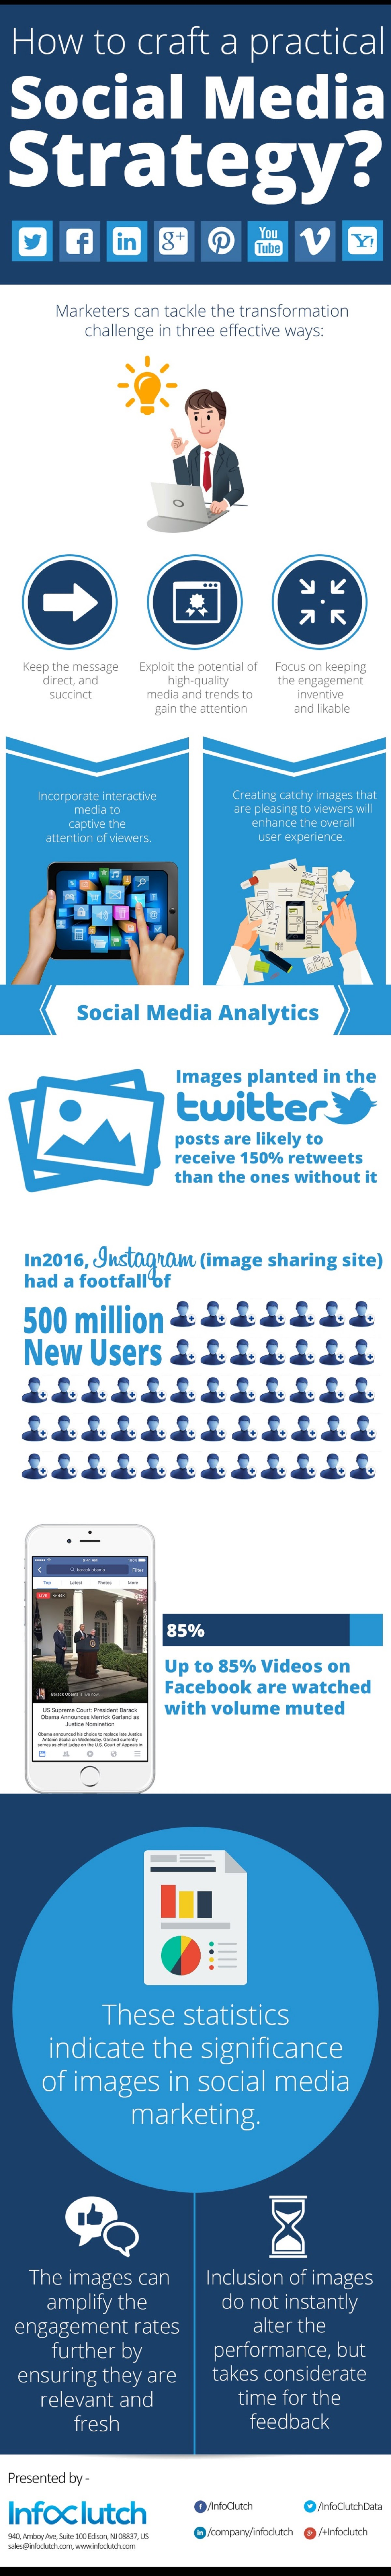 how-to-craft-a-practical-social-media-strategy-infographic